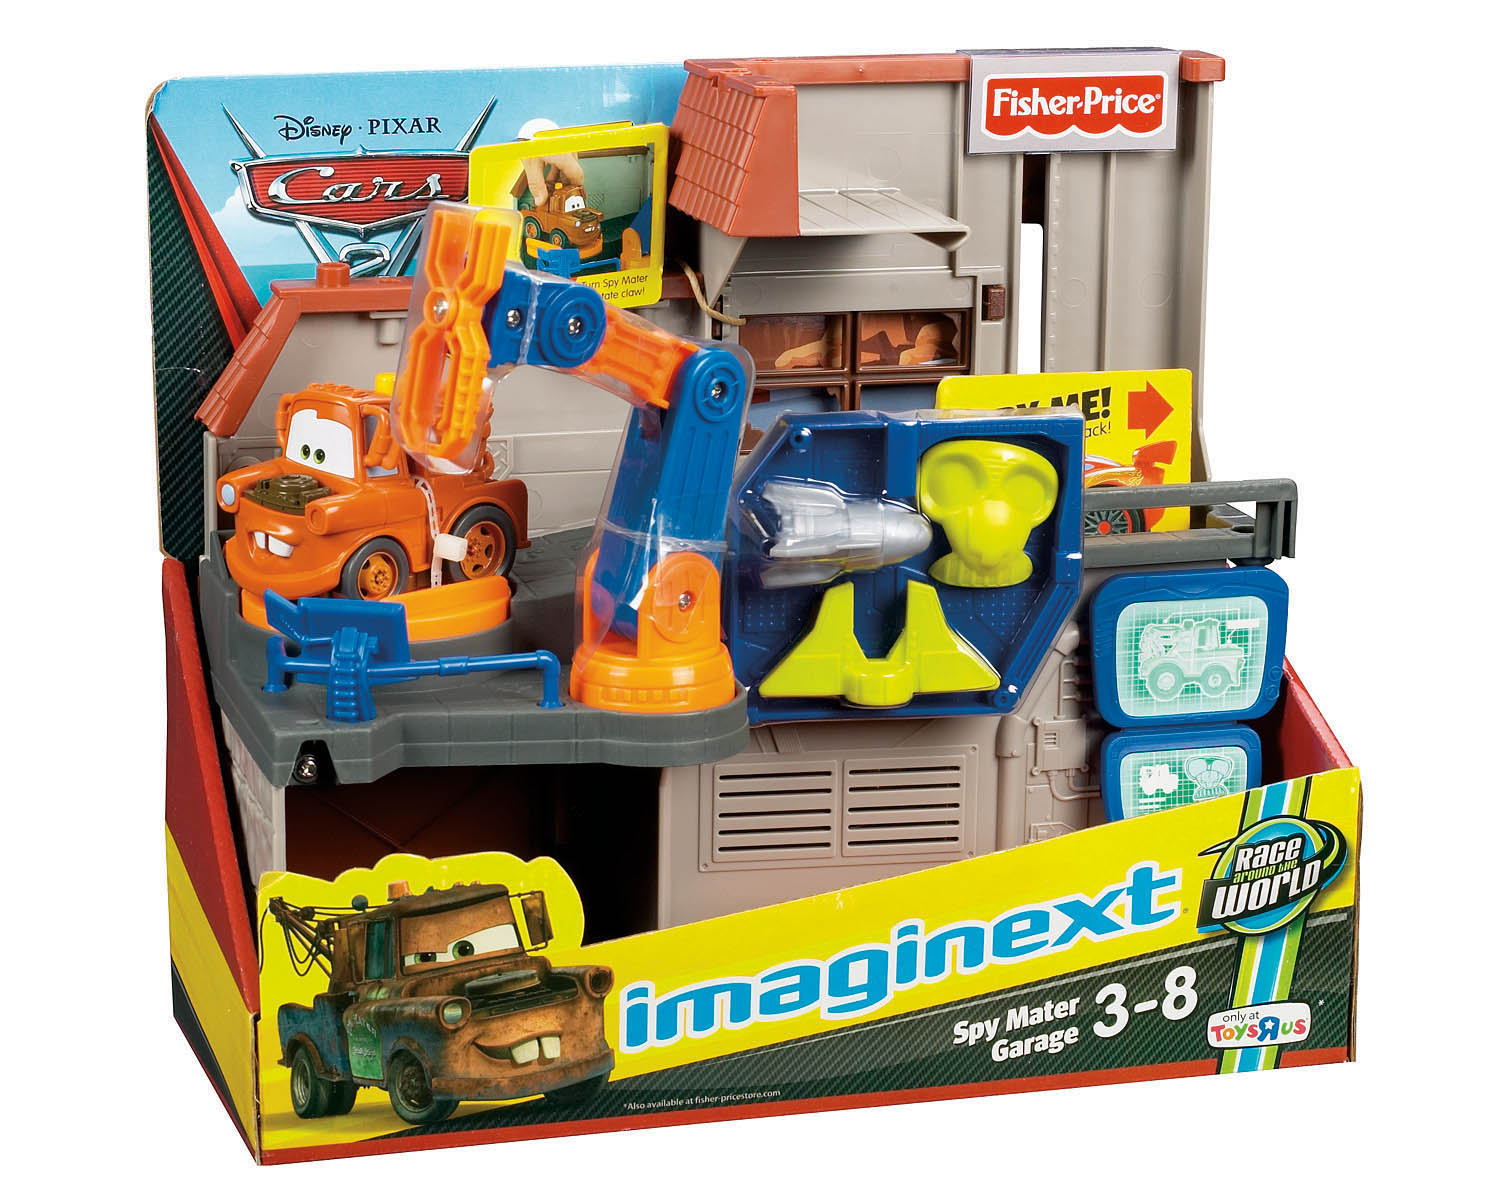 Toys R Us Revs Up For Cars 2 With Exclusives And